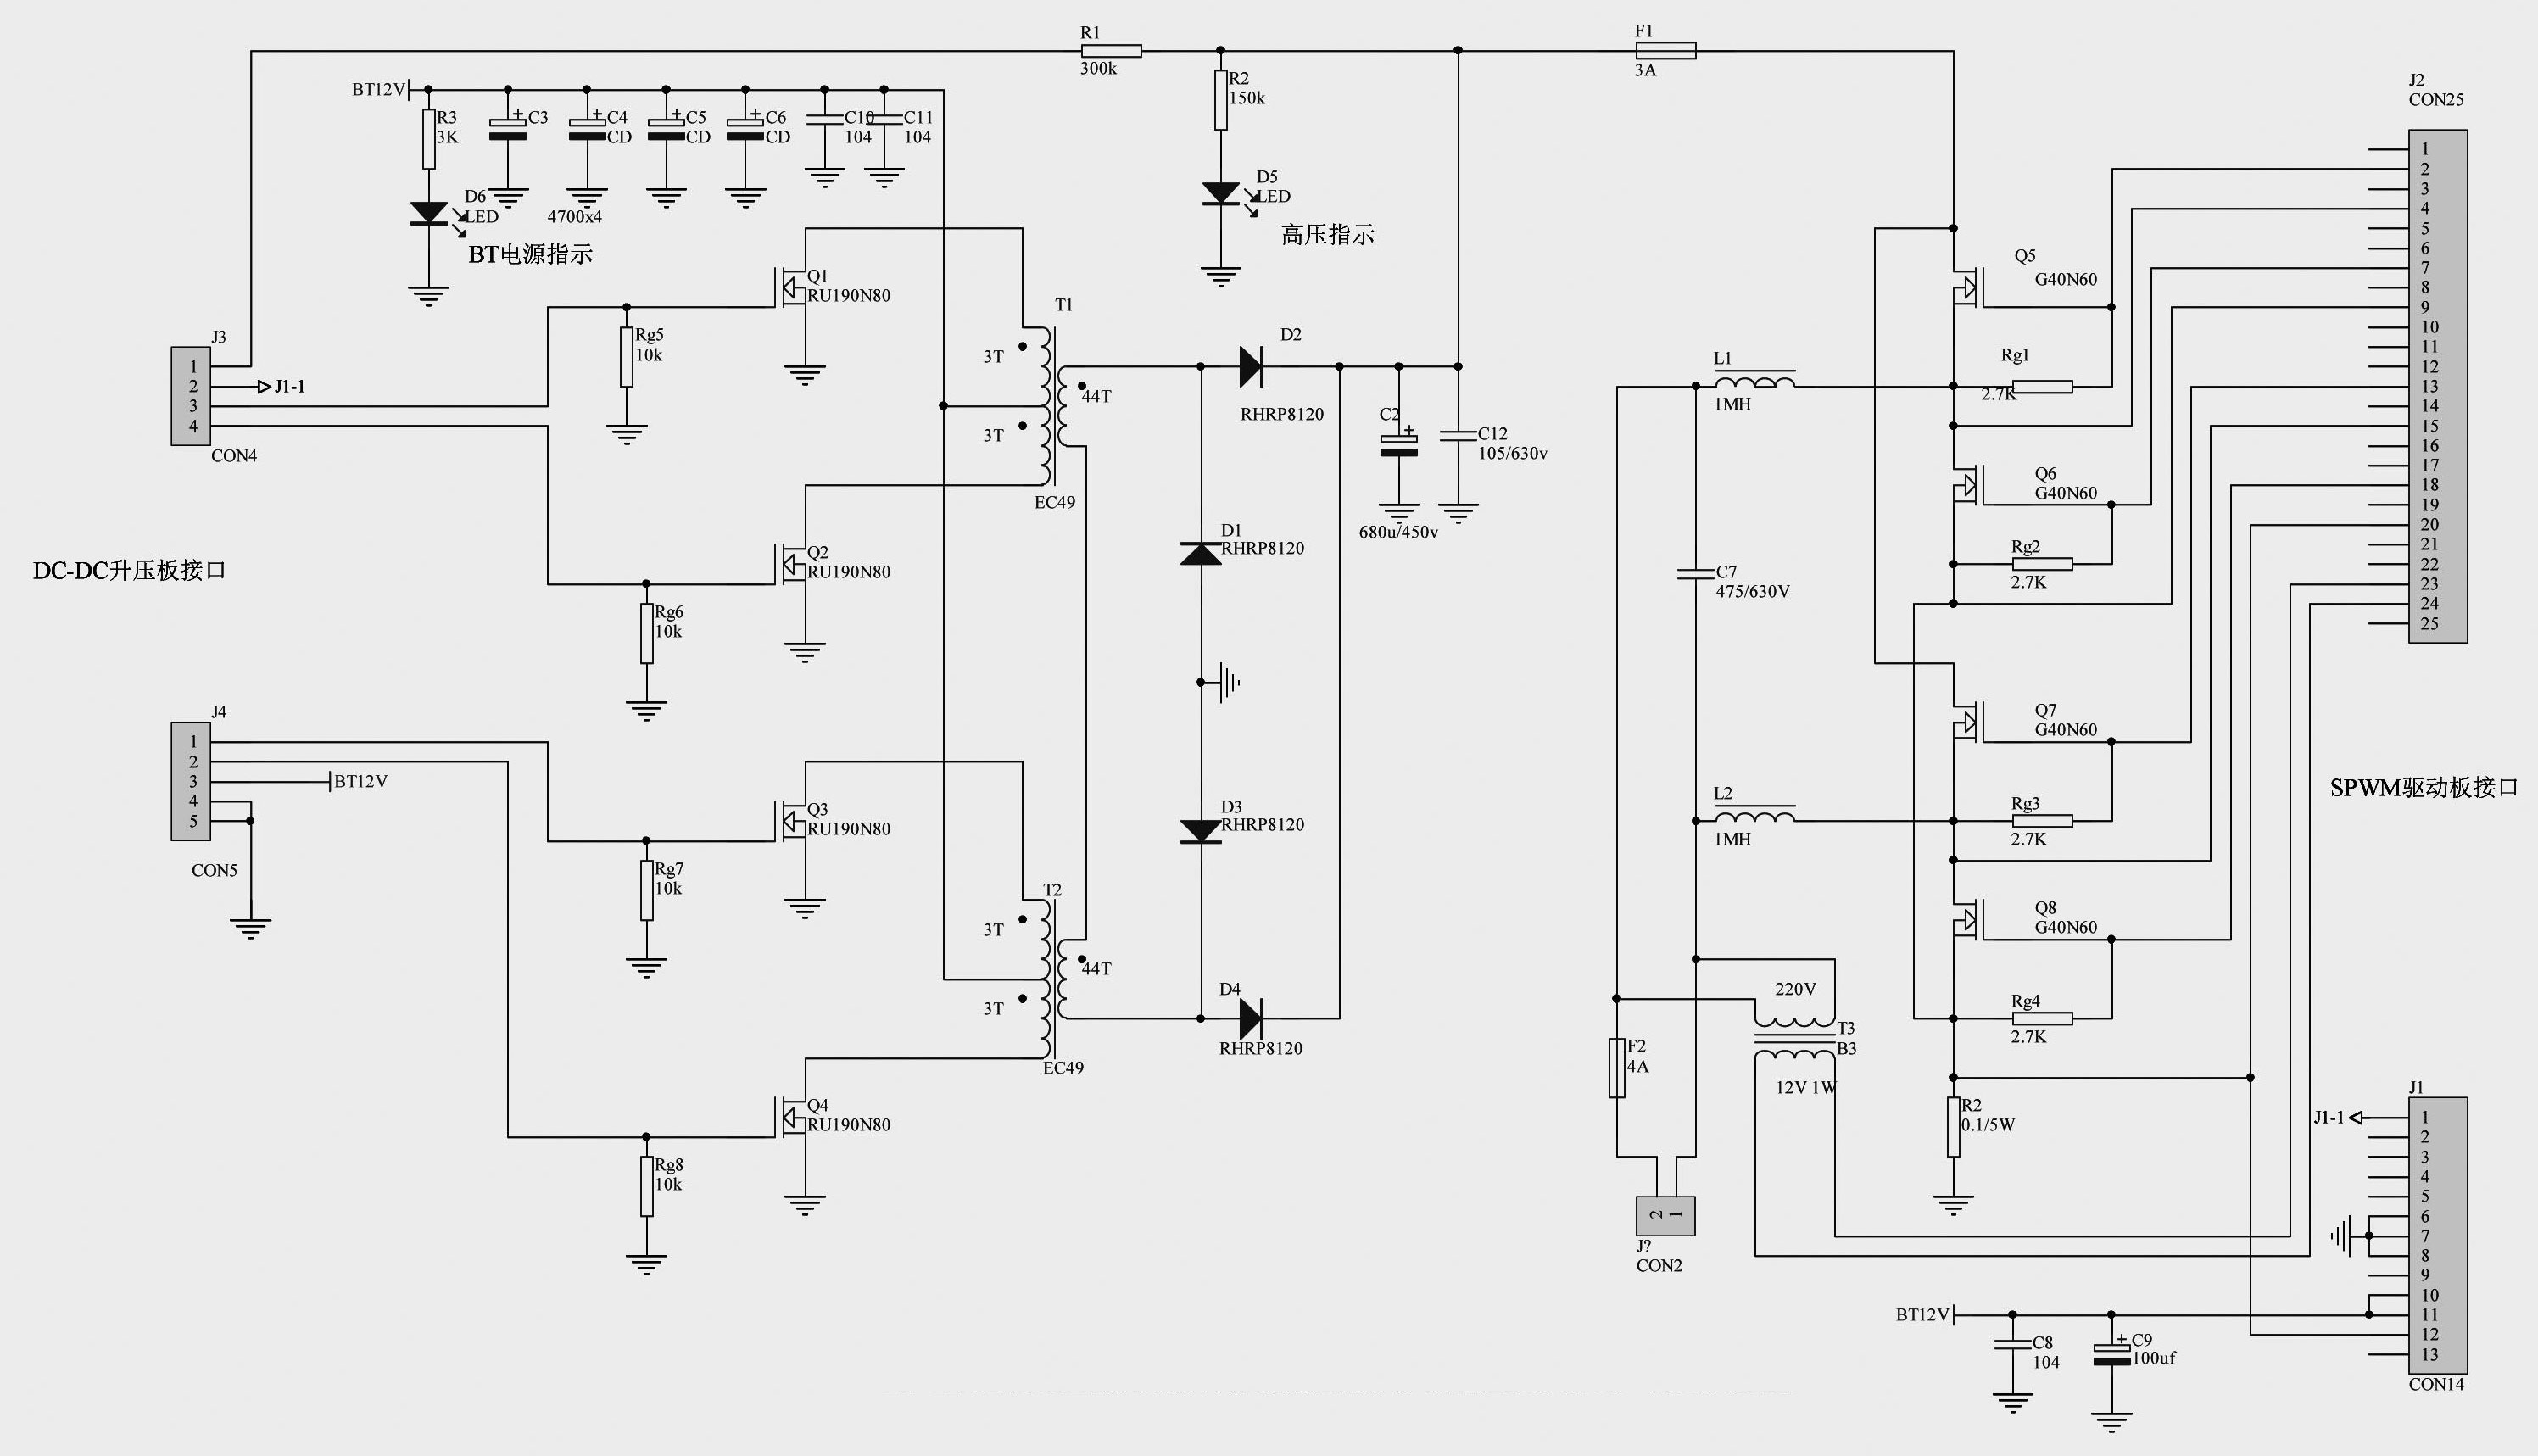 W Sodium Ballast Wiring Diagram